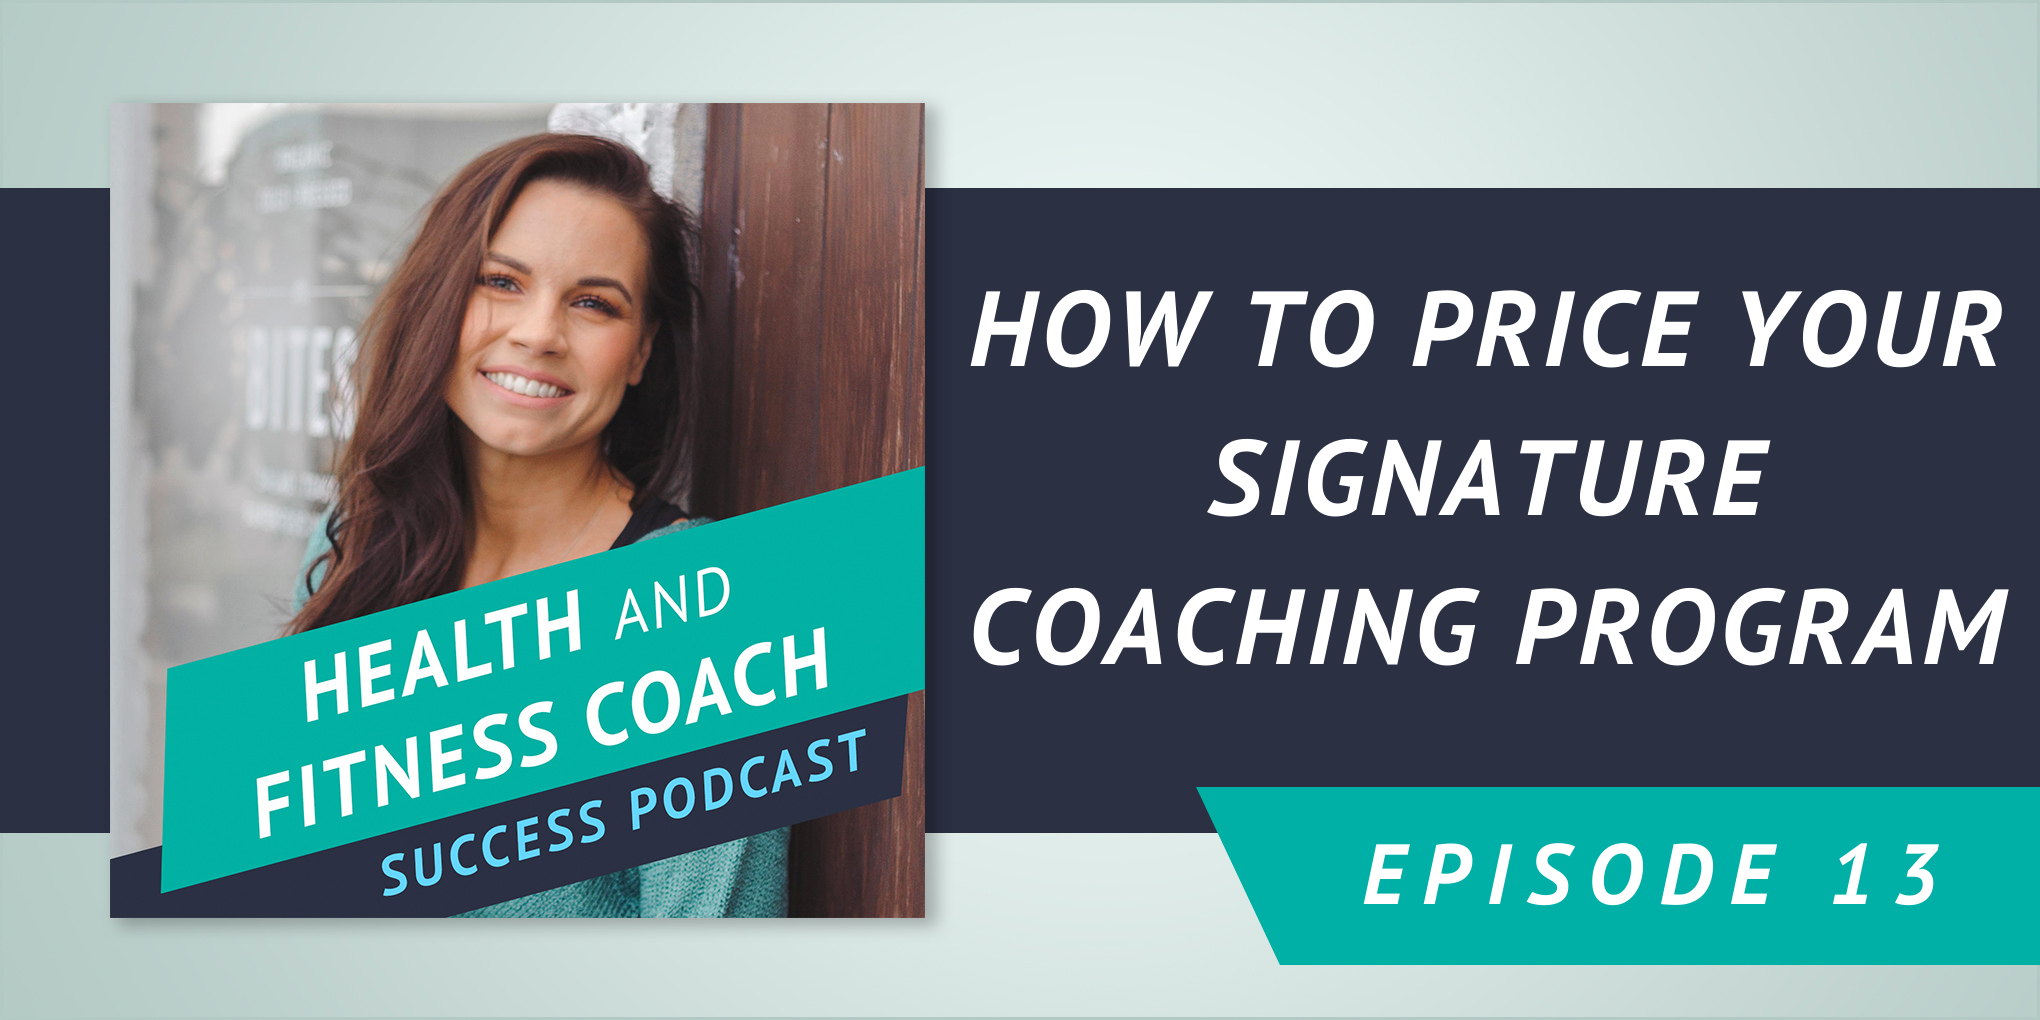 How To Price Your Signature Coaching Program